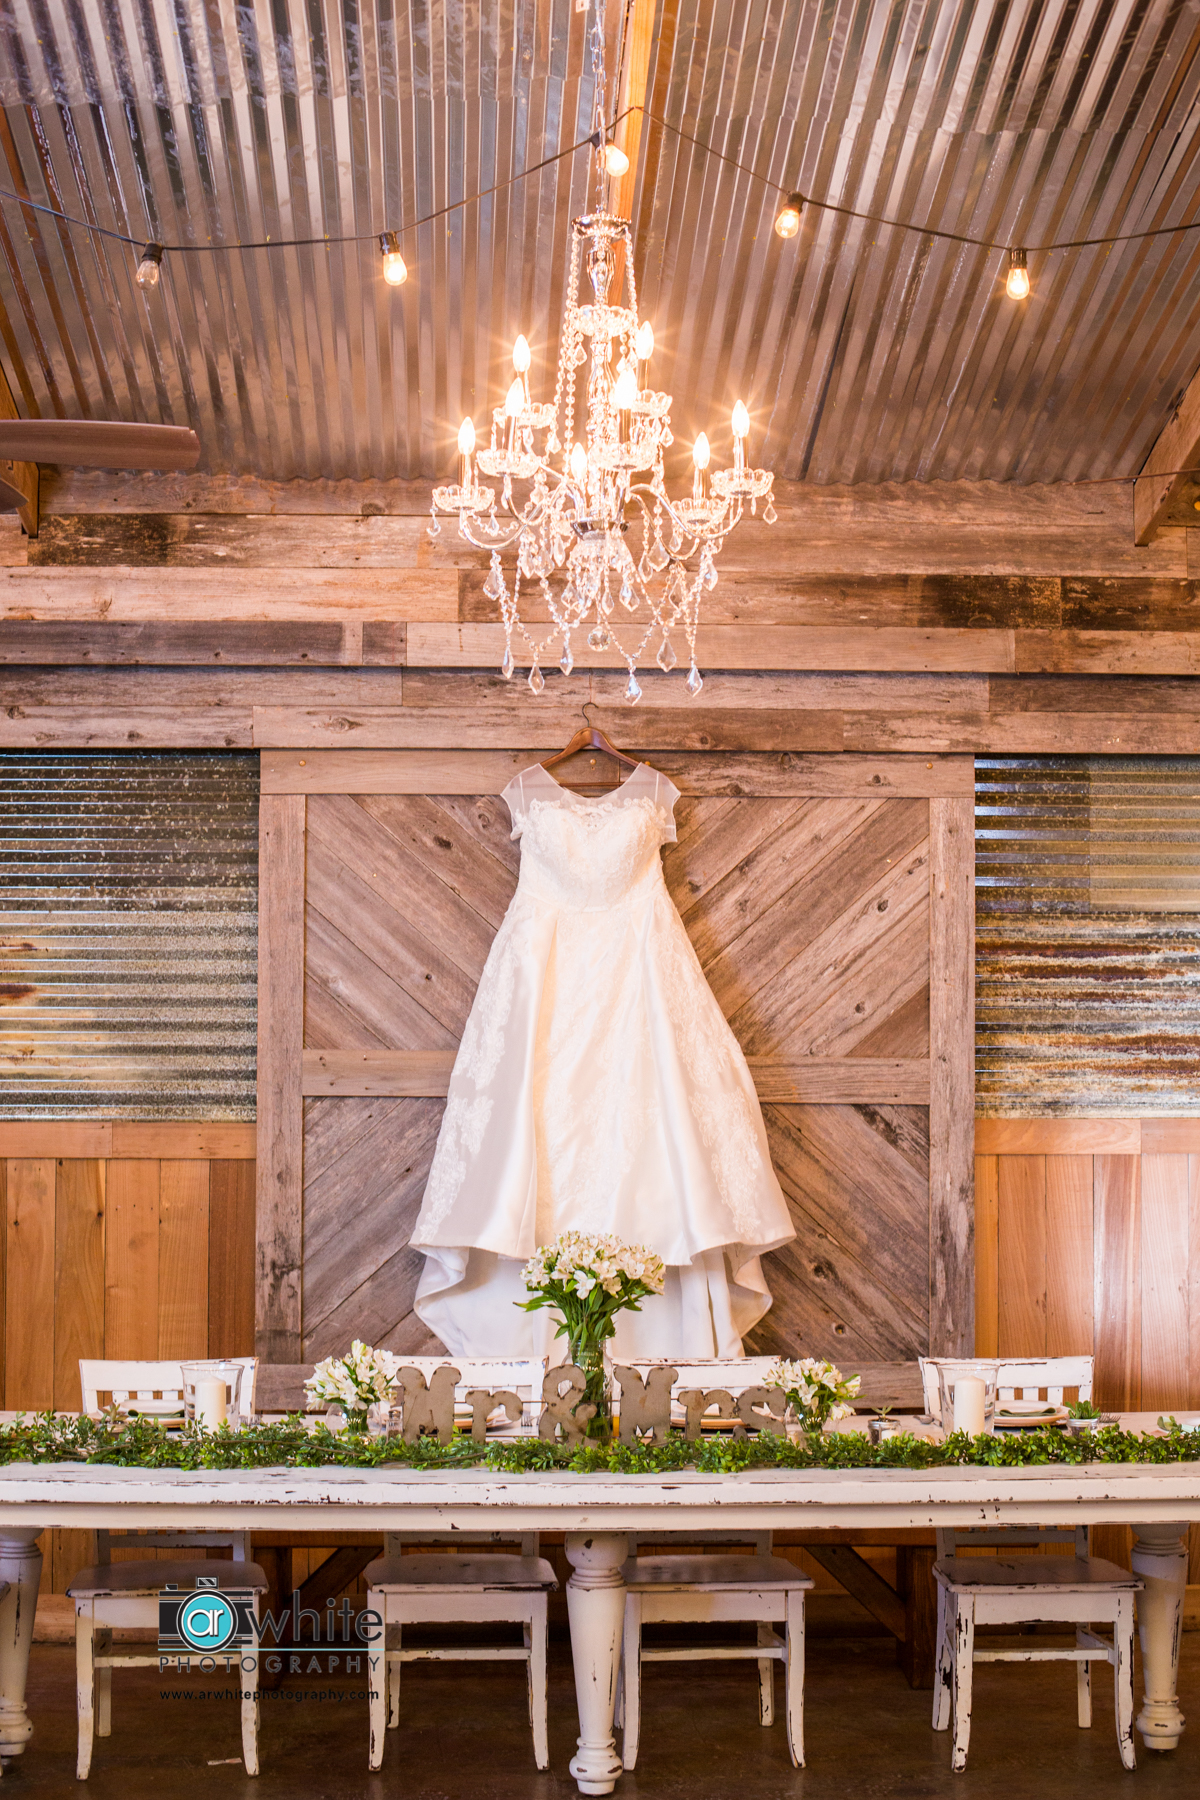 Wedding dress at a barn venue hung against a barn door with shabby chic chandelier and string lights in foreground.